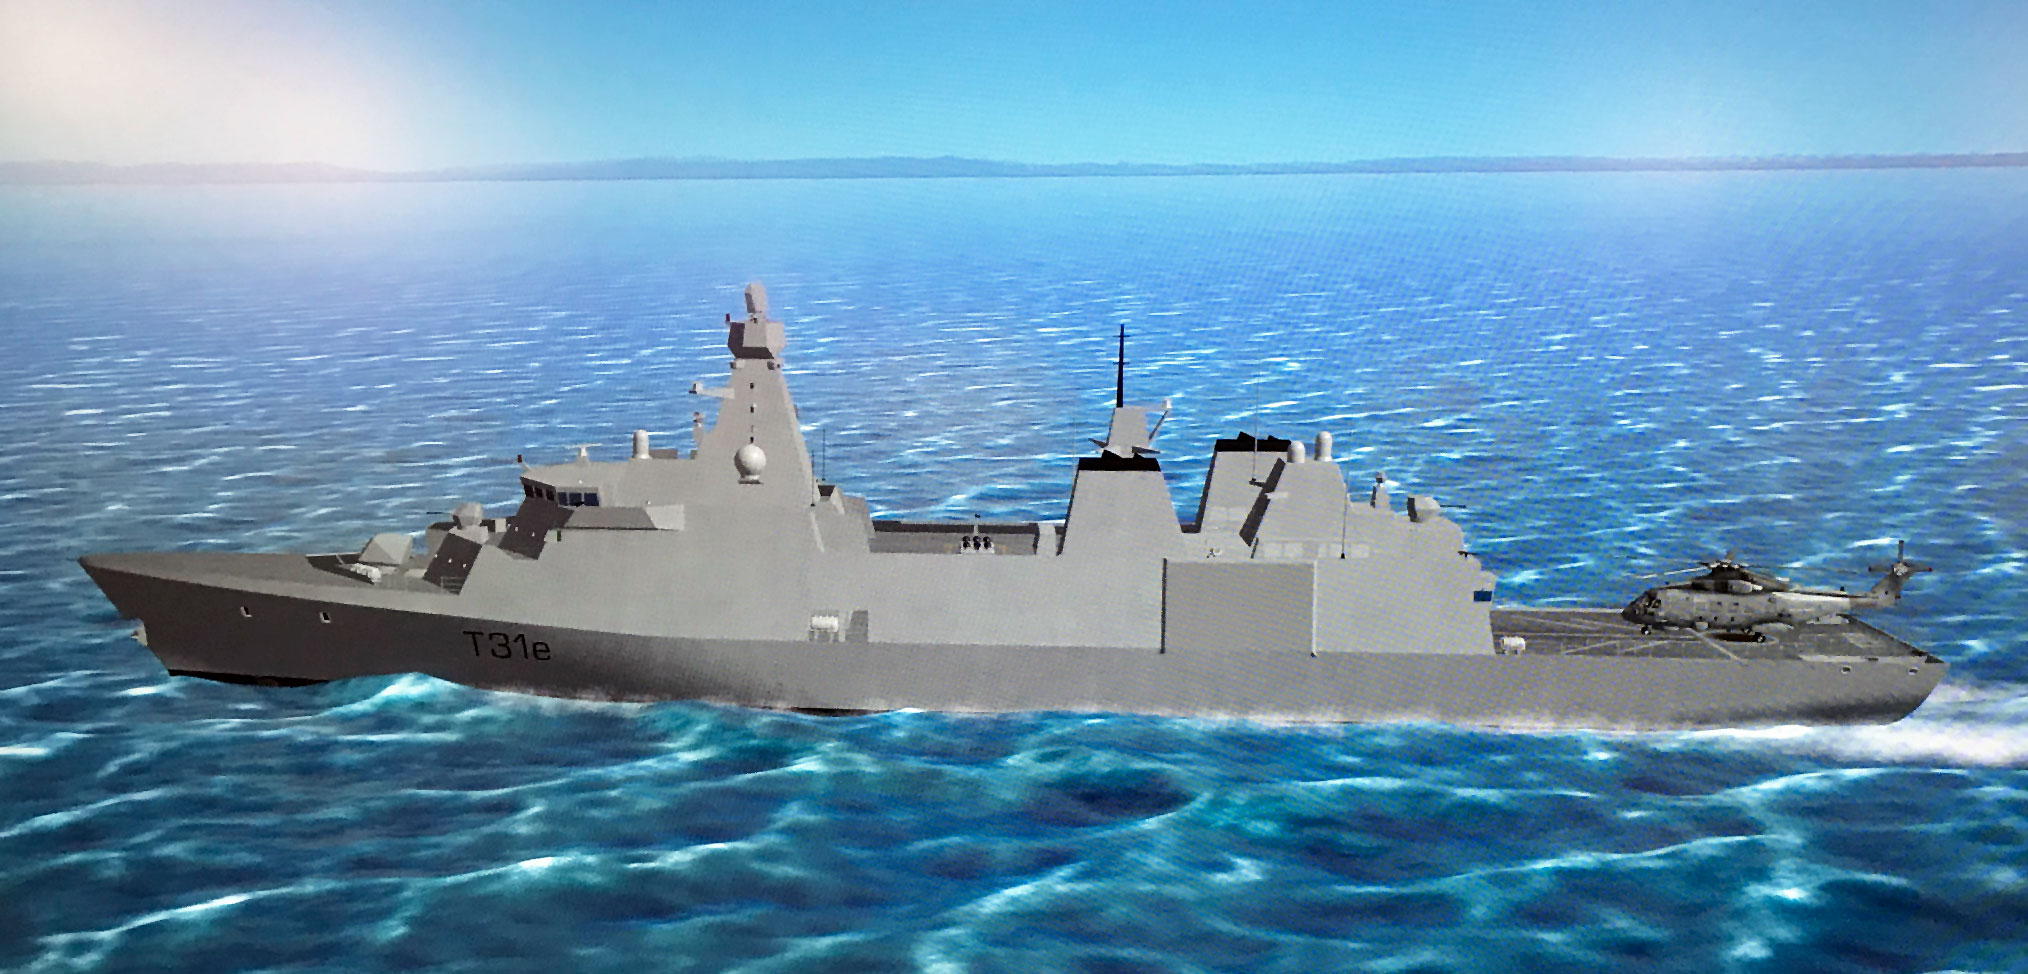 more details of the royal navy u2019s type 31 frigate emerge